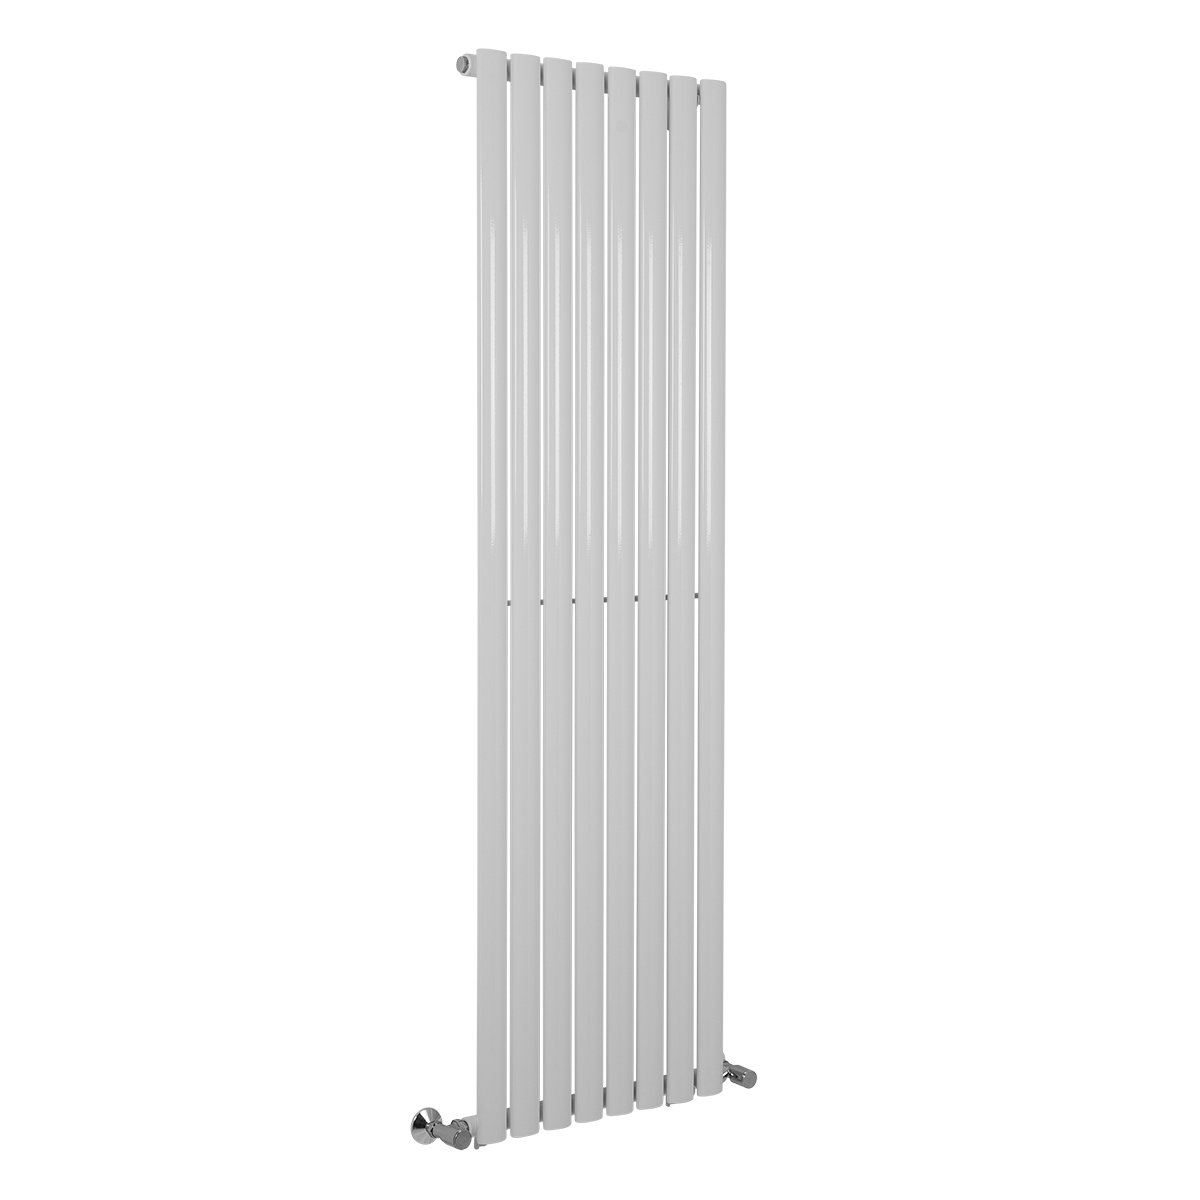 radiateur eau chaude design norden 850w 1600 x 480 blanc chauffage central ebay. Black Bedroom Furniture Sets. Home Design Ideas